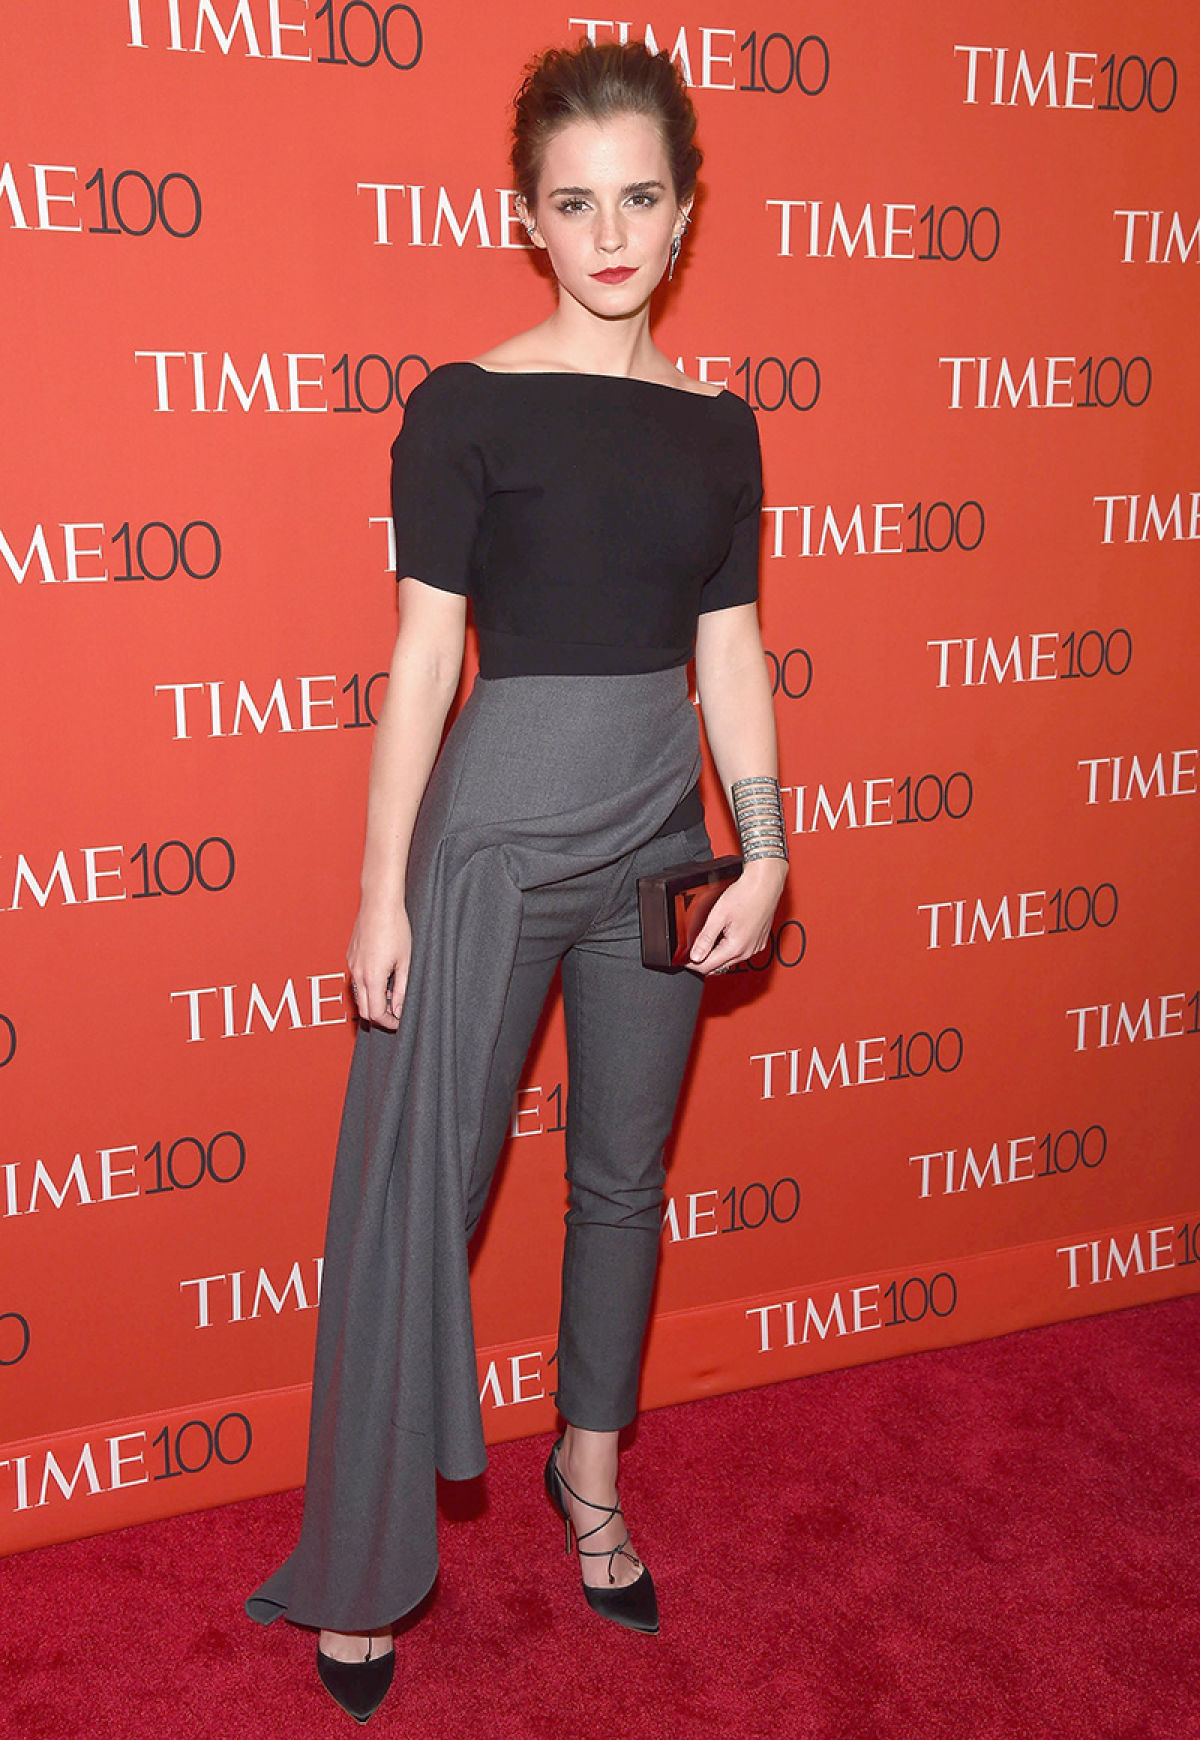 Emma Watson in a black shirt and dark grey skirt-pants hybrid outfit